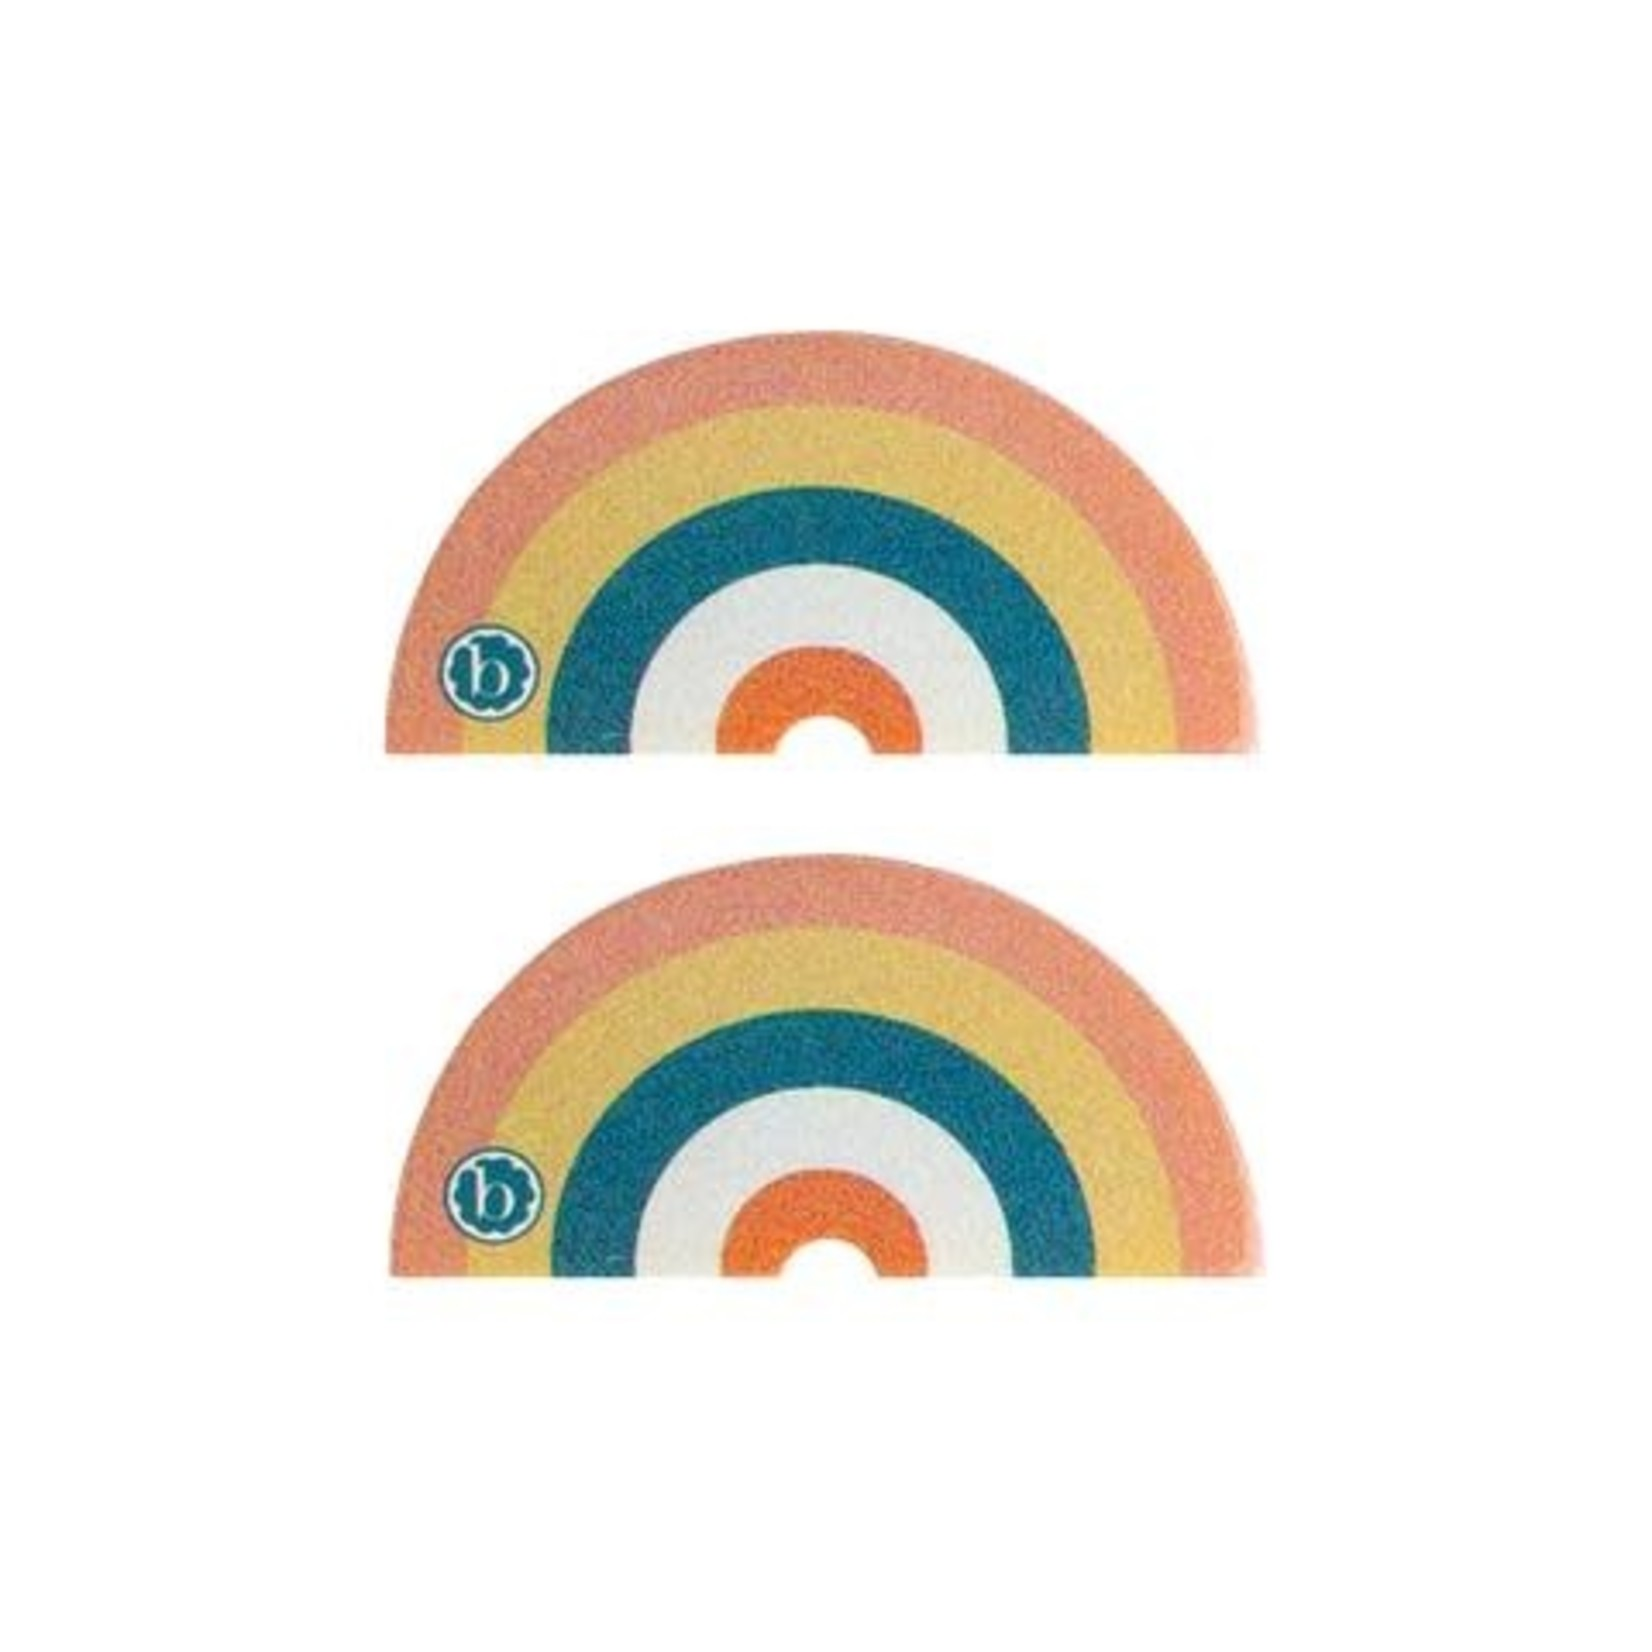 Baby Bling Bows 2PK RAINBOW CLIPS: sunset